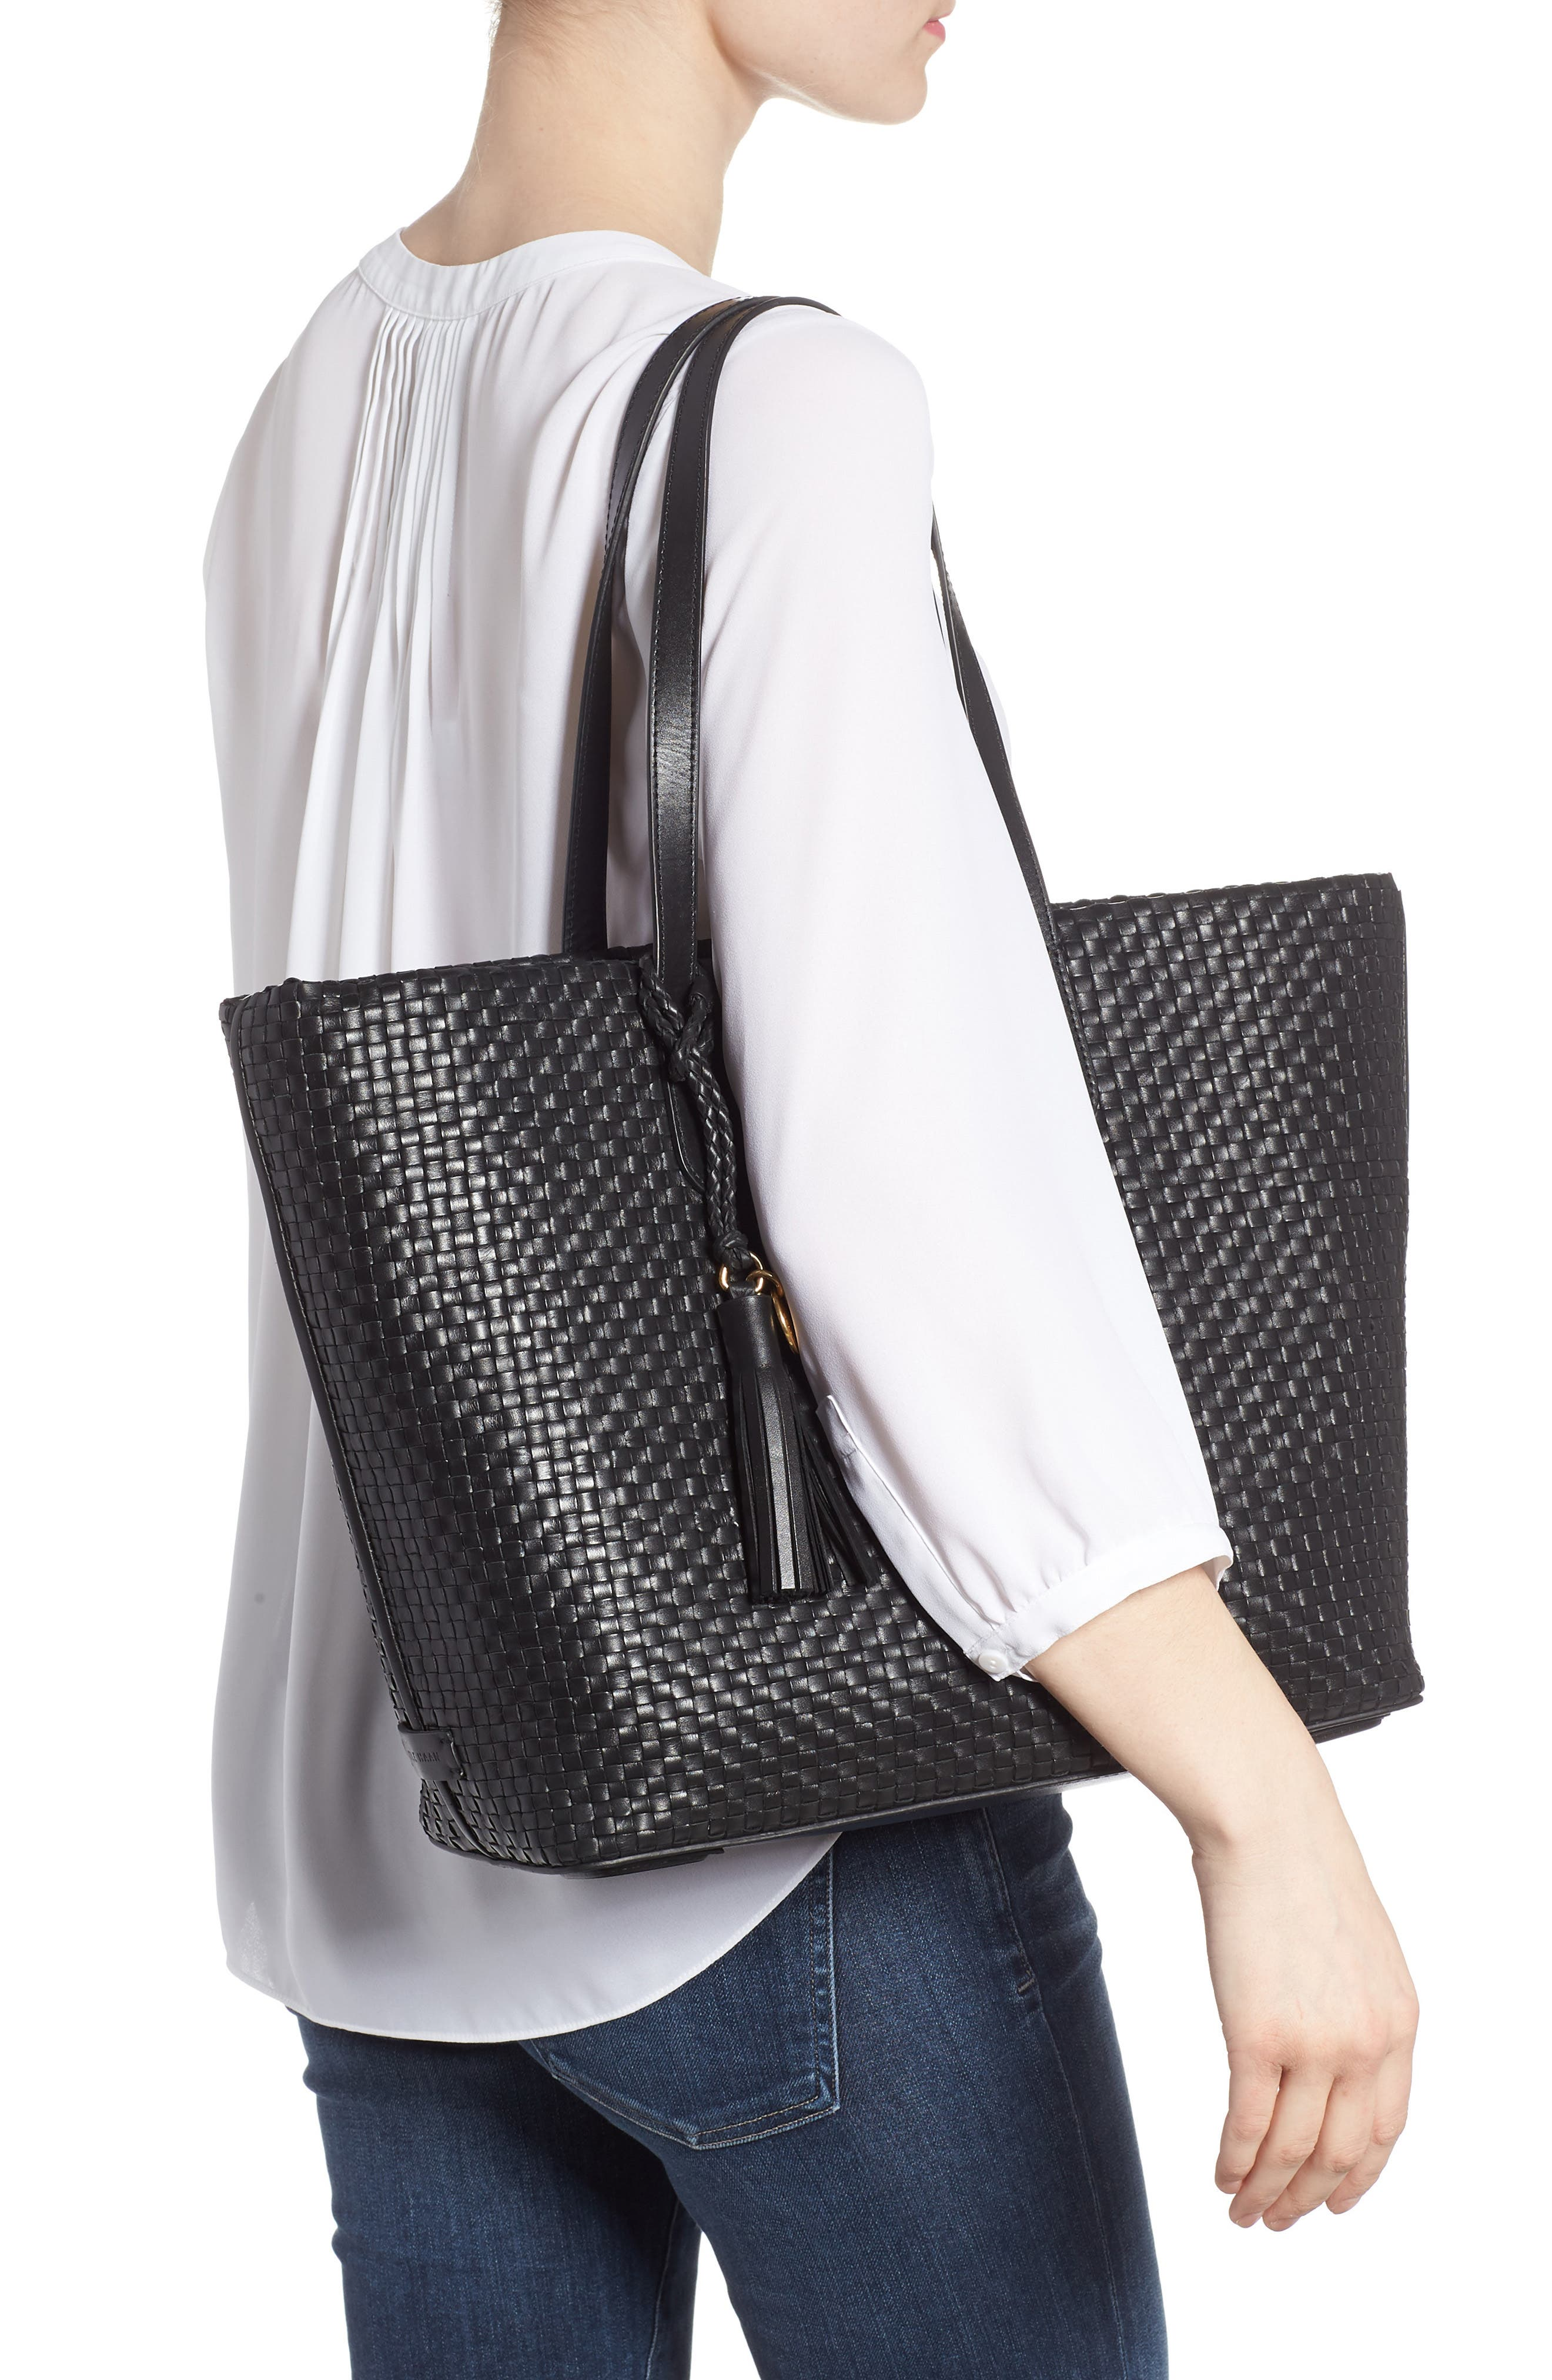 Payson RFID Woven Leather Tote,                             Alternate thumbnail 2, color,                             Black